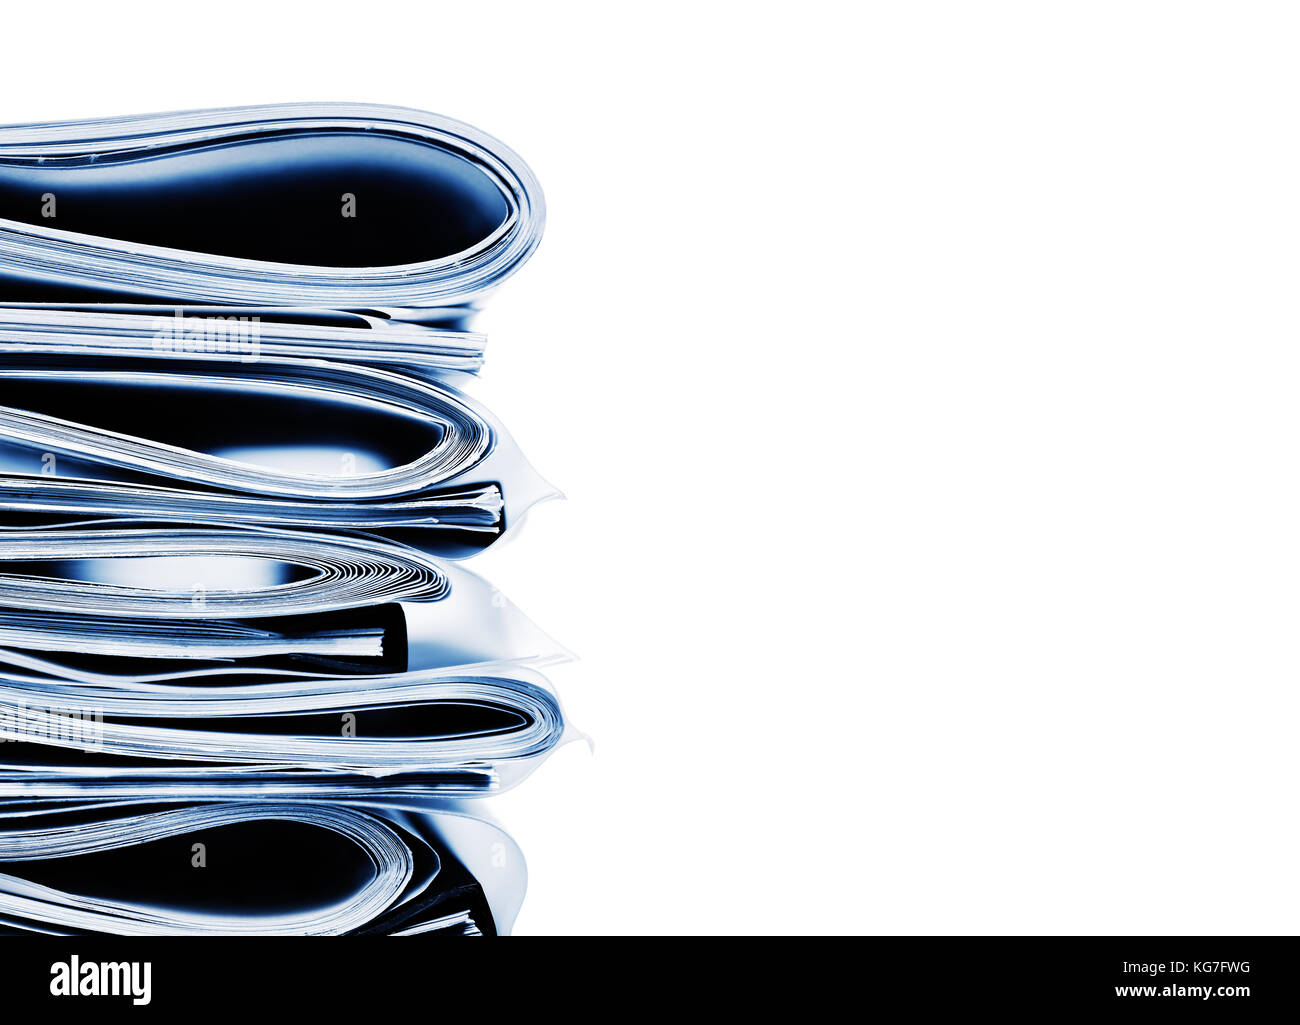 Stack of folded business, legal or insurance papers - Stock Image